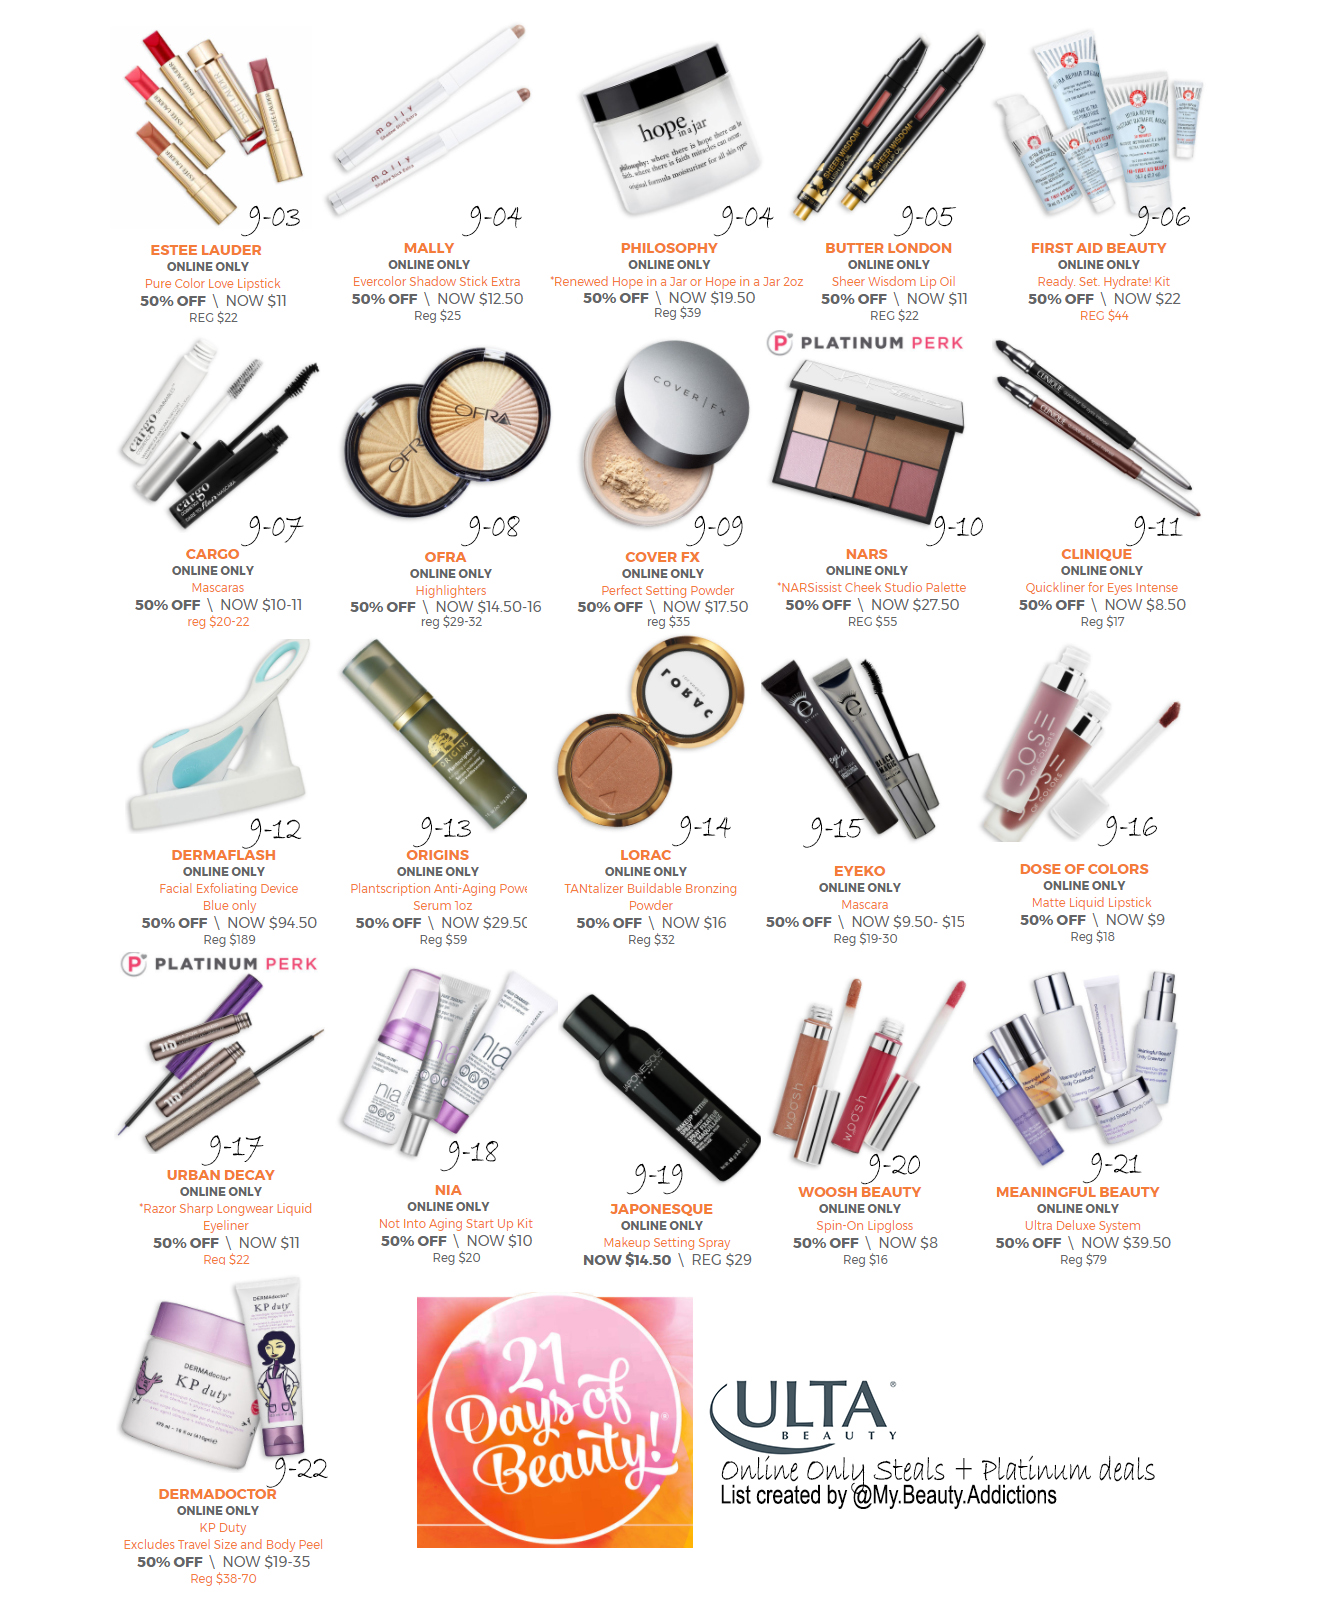 Online Only Ulta Steals by MyBeautyAddictions